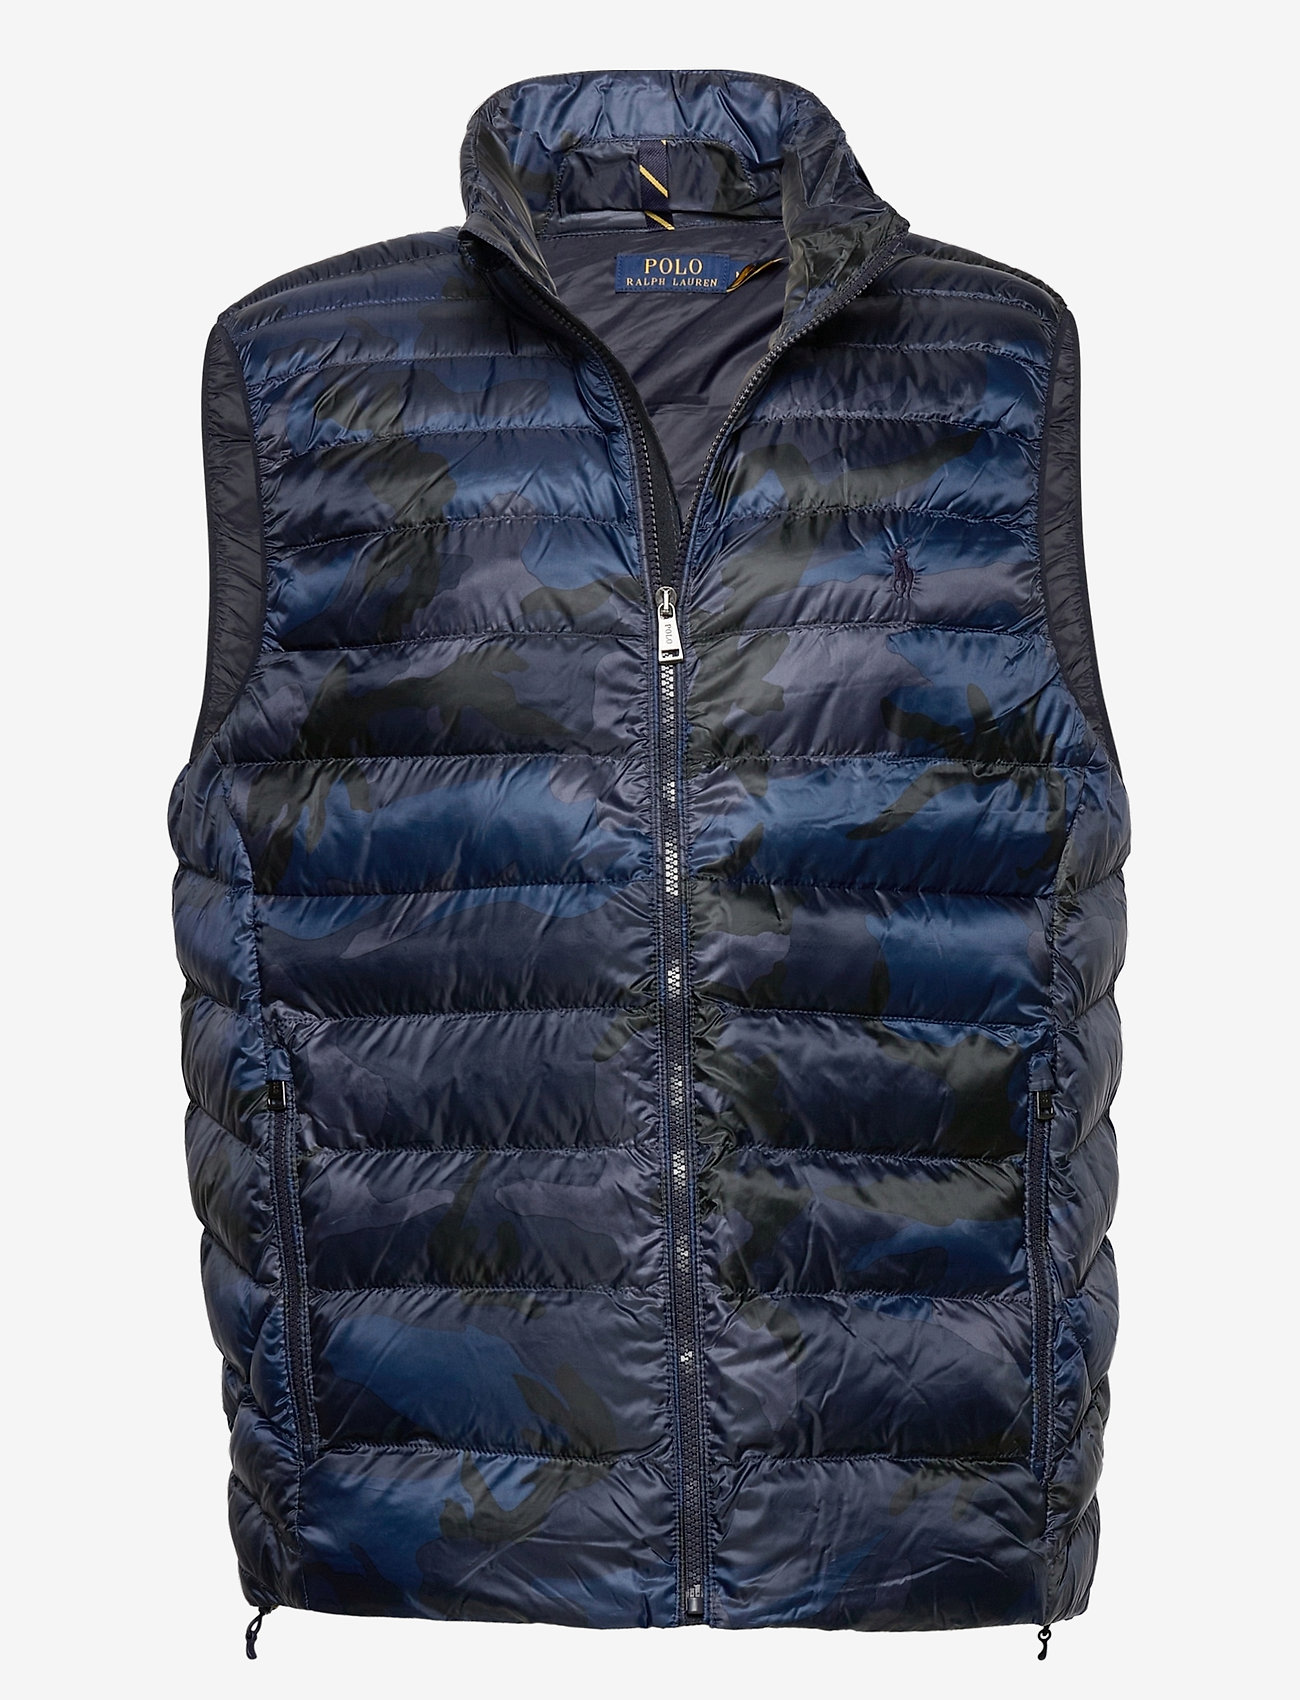 Polo Ralph Lauren - RECYCLED NYLON-TERRA VEST - vests - navy surpls camo - 0